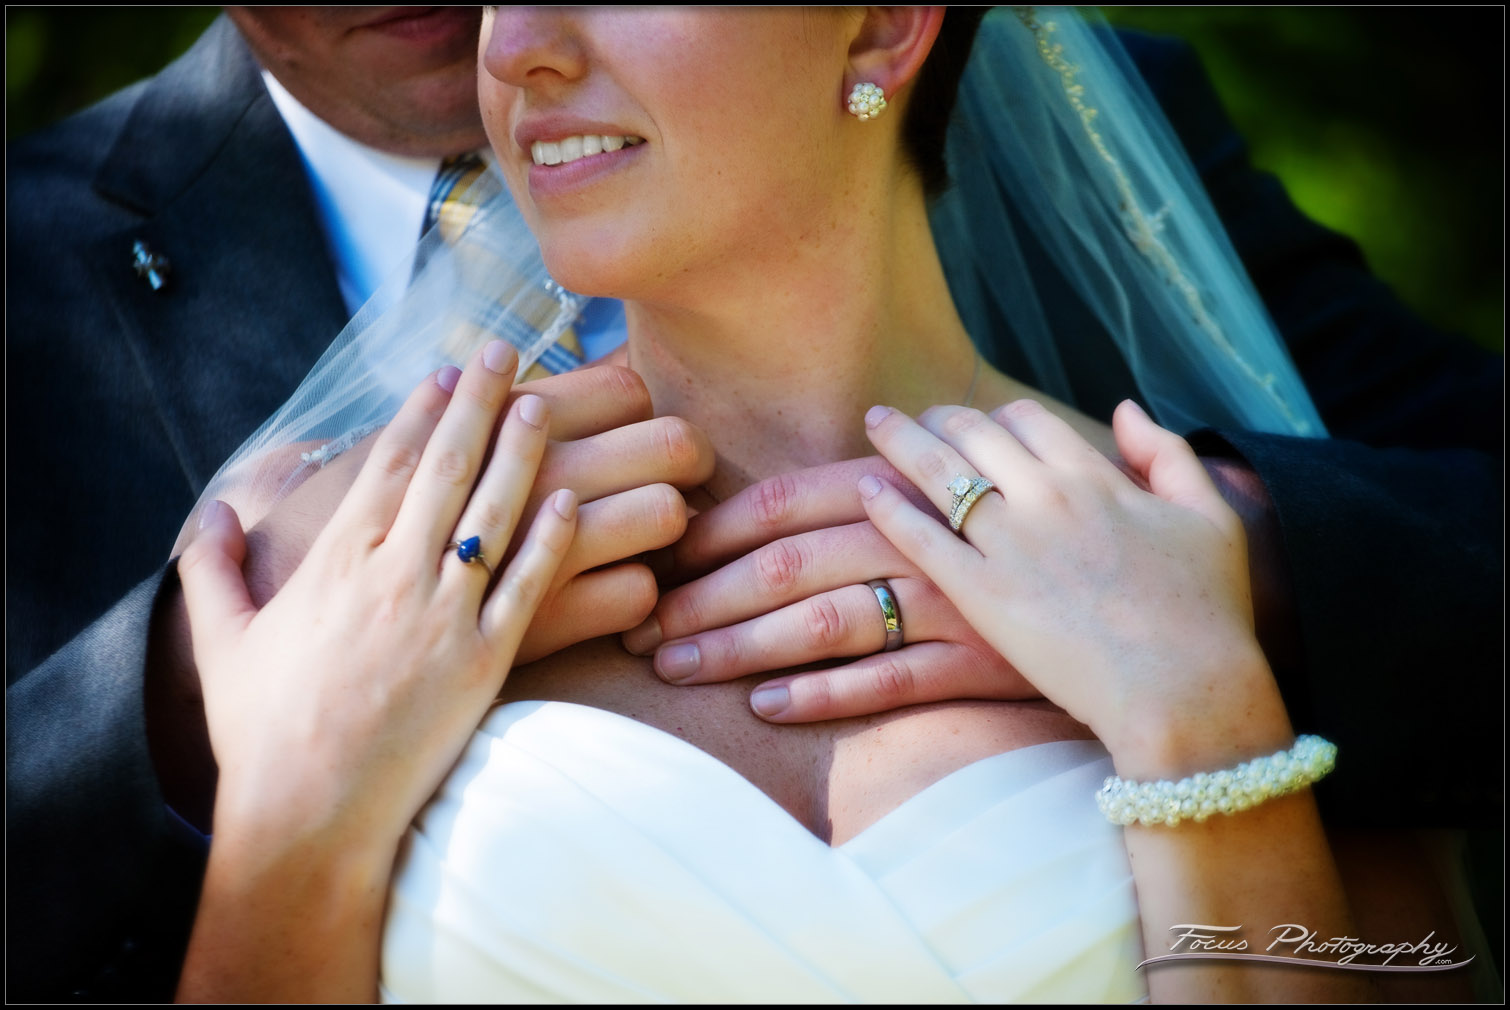 the wedding rings are well displayed on the bride